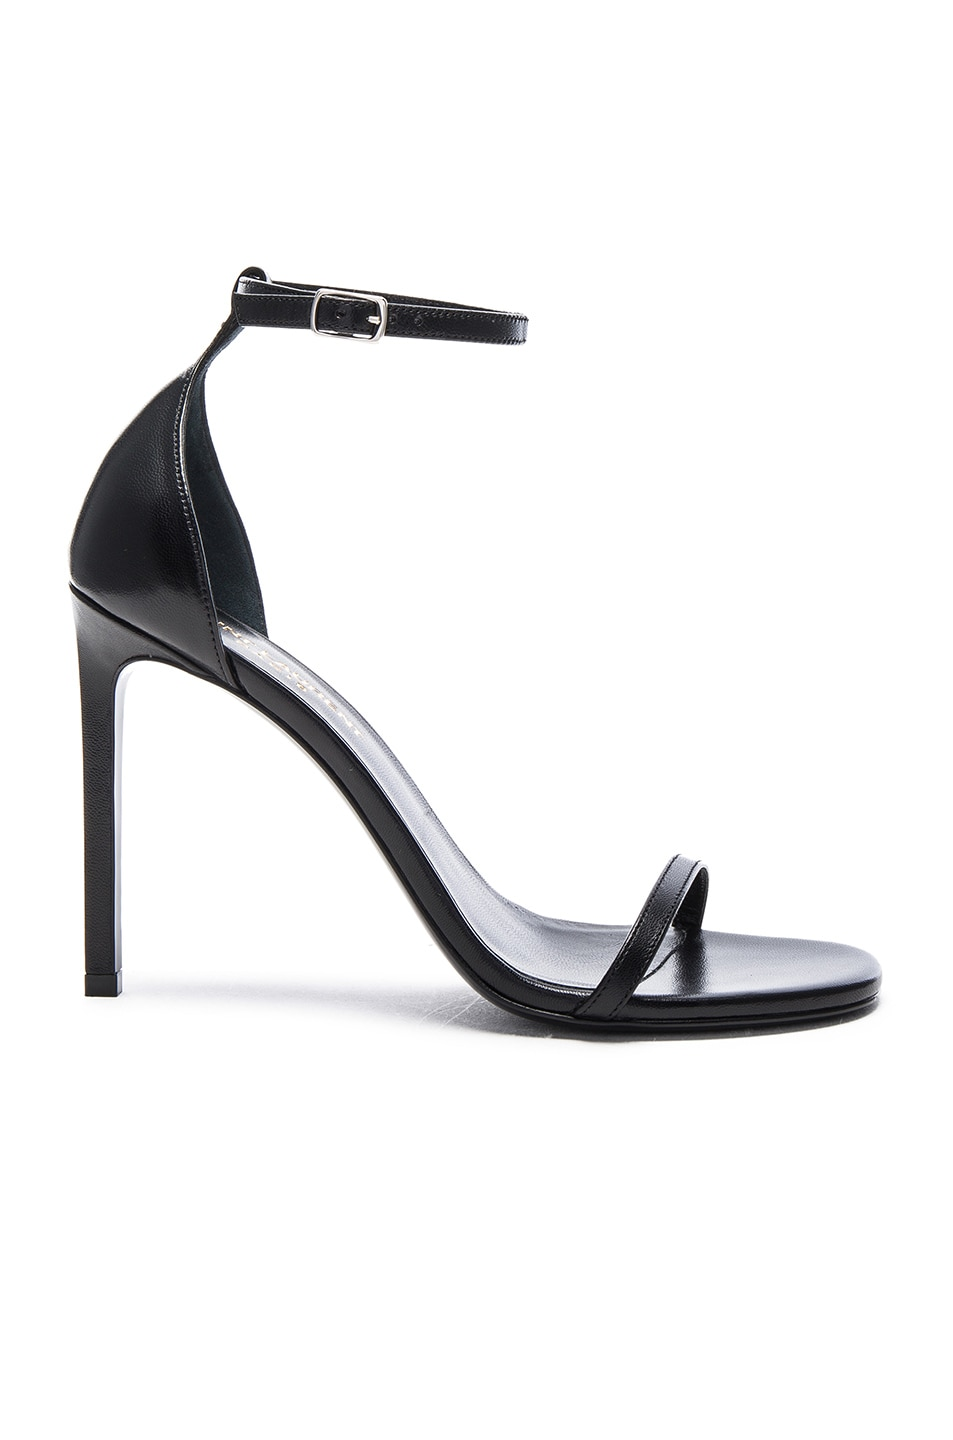 Image 1 of Saint Laurent Leather Jane Sandals in Black